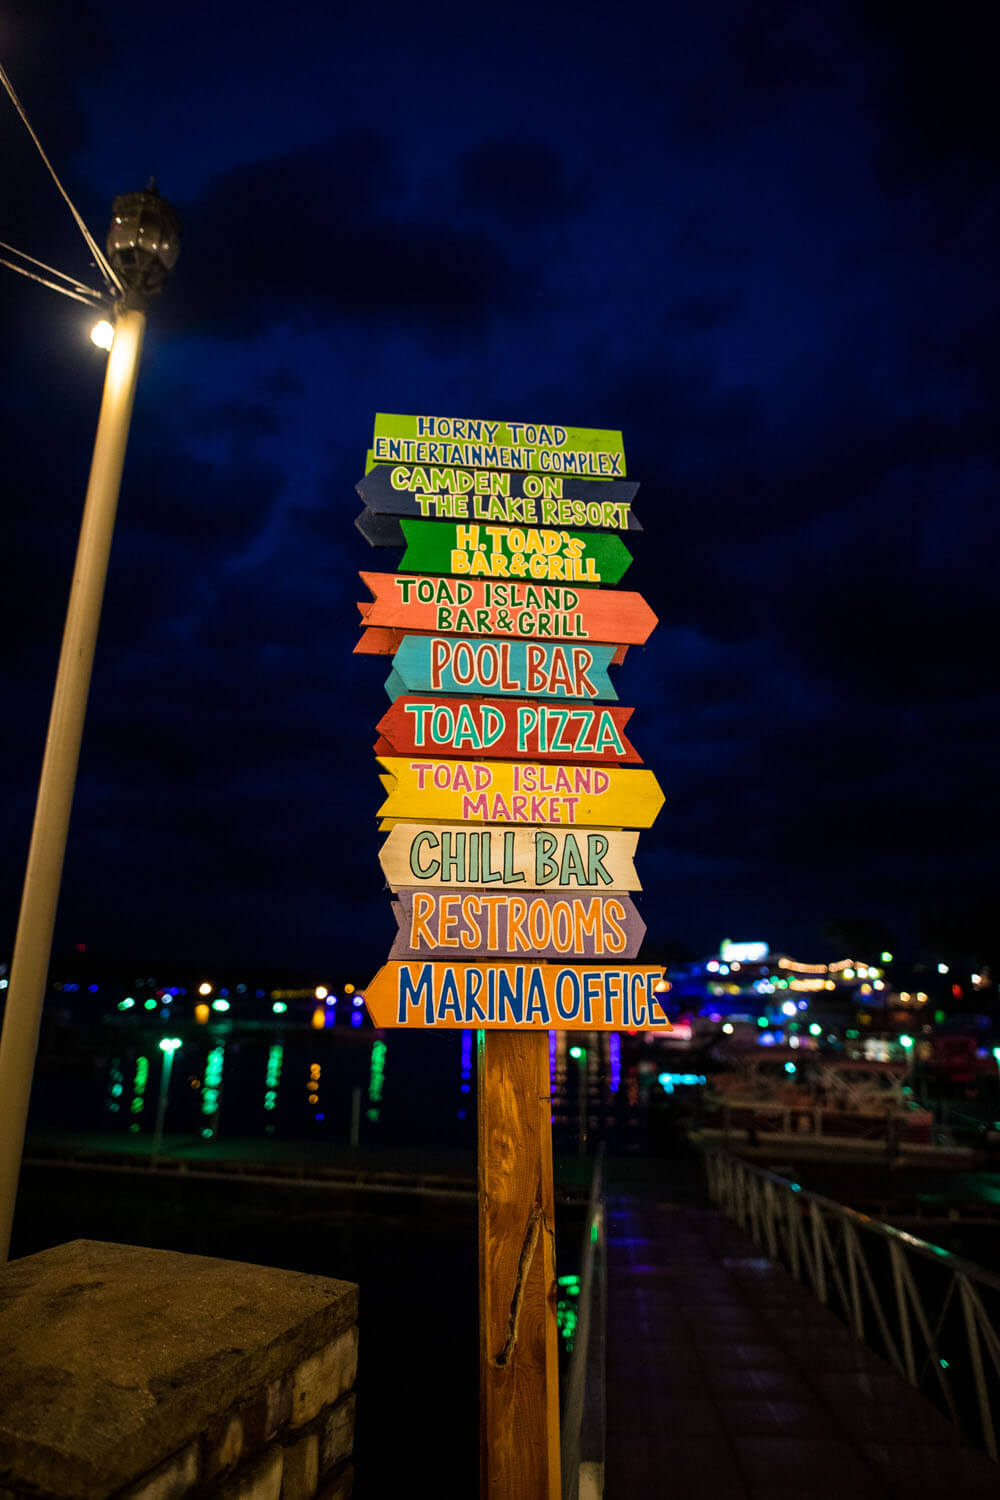 Sign with directions to locations at Camden on the Lake Horny Toad Entertainment complex